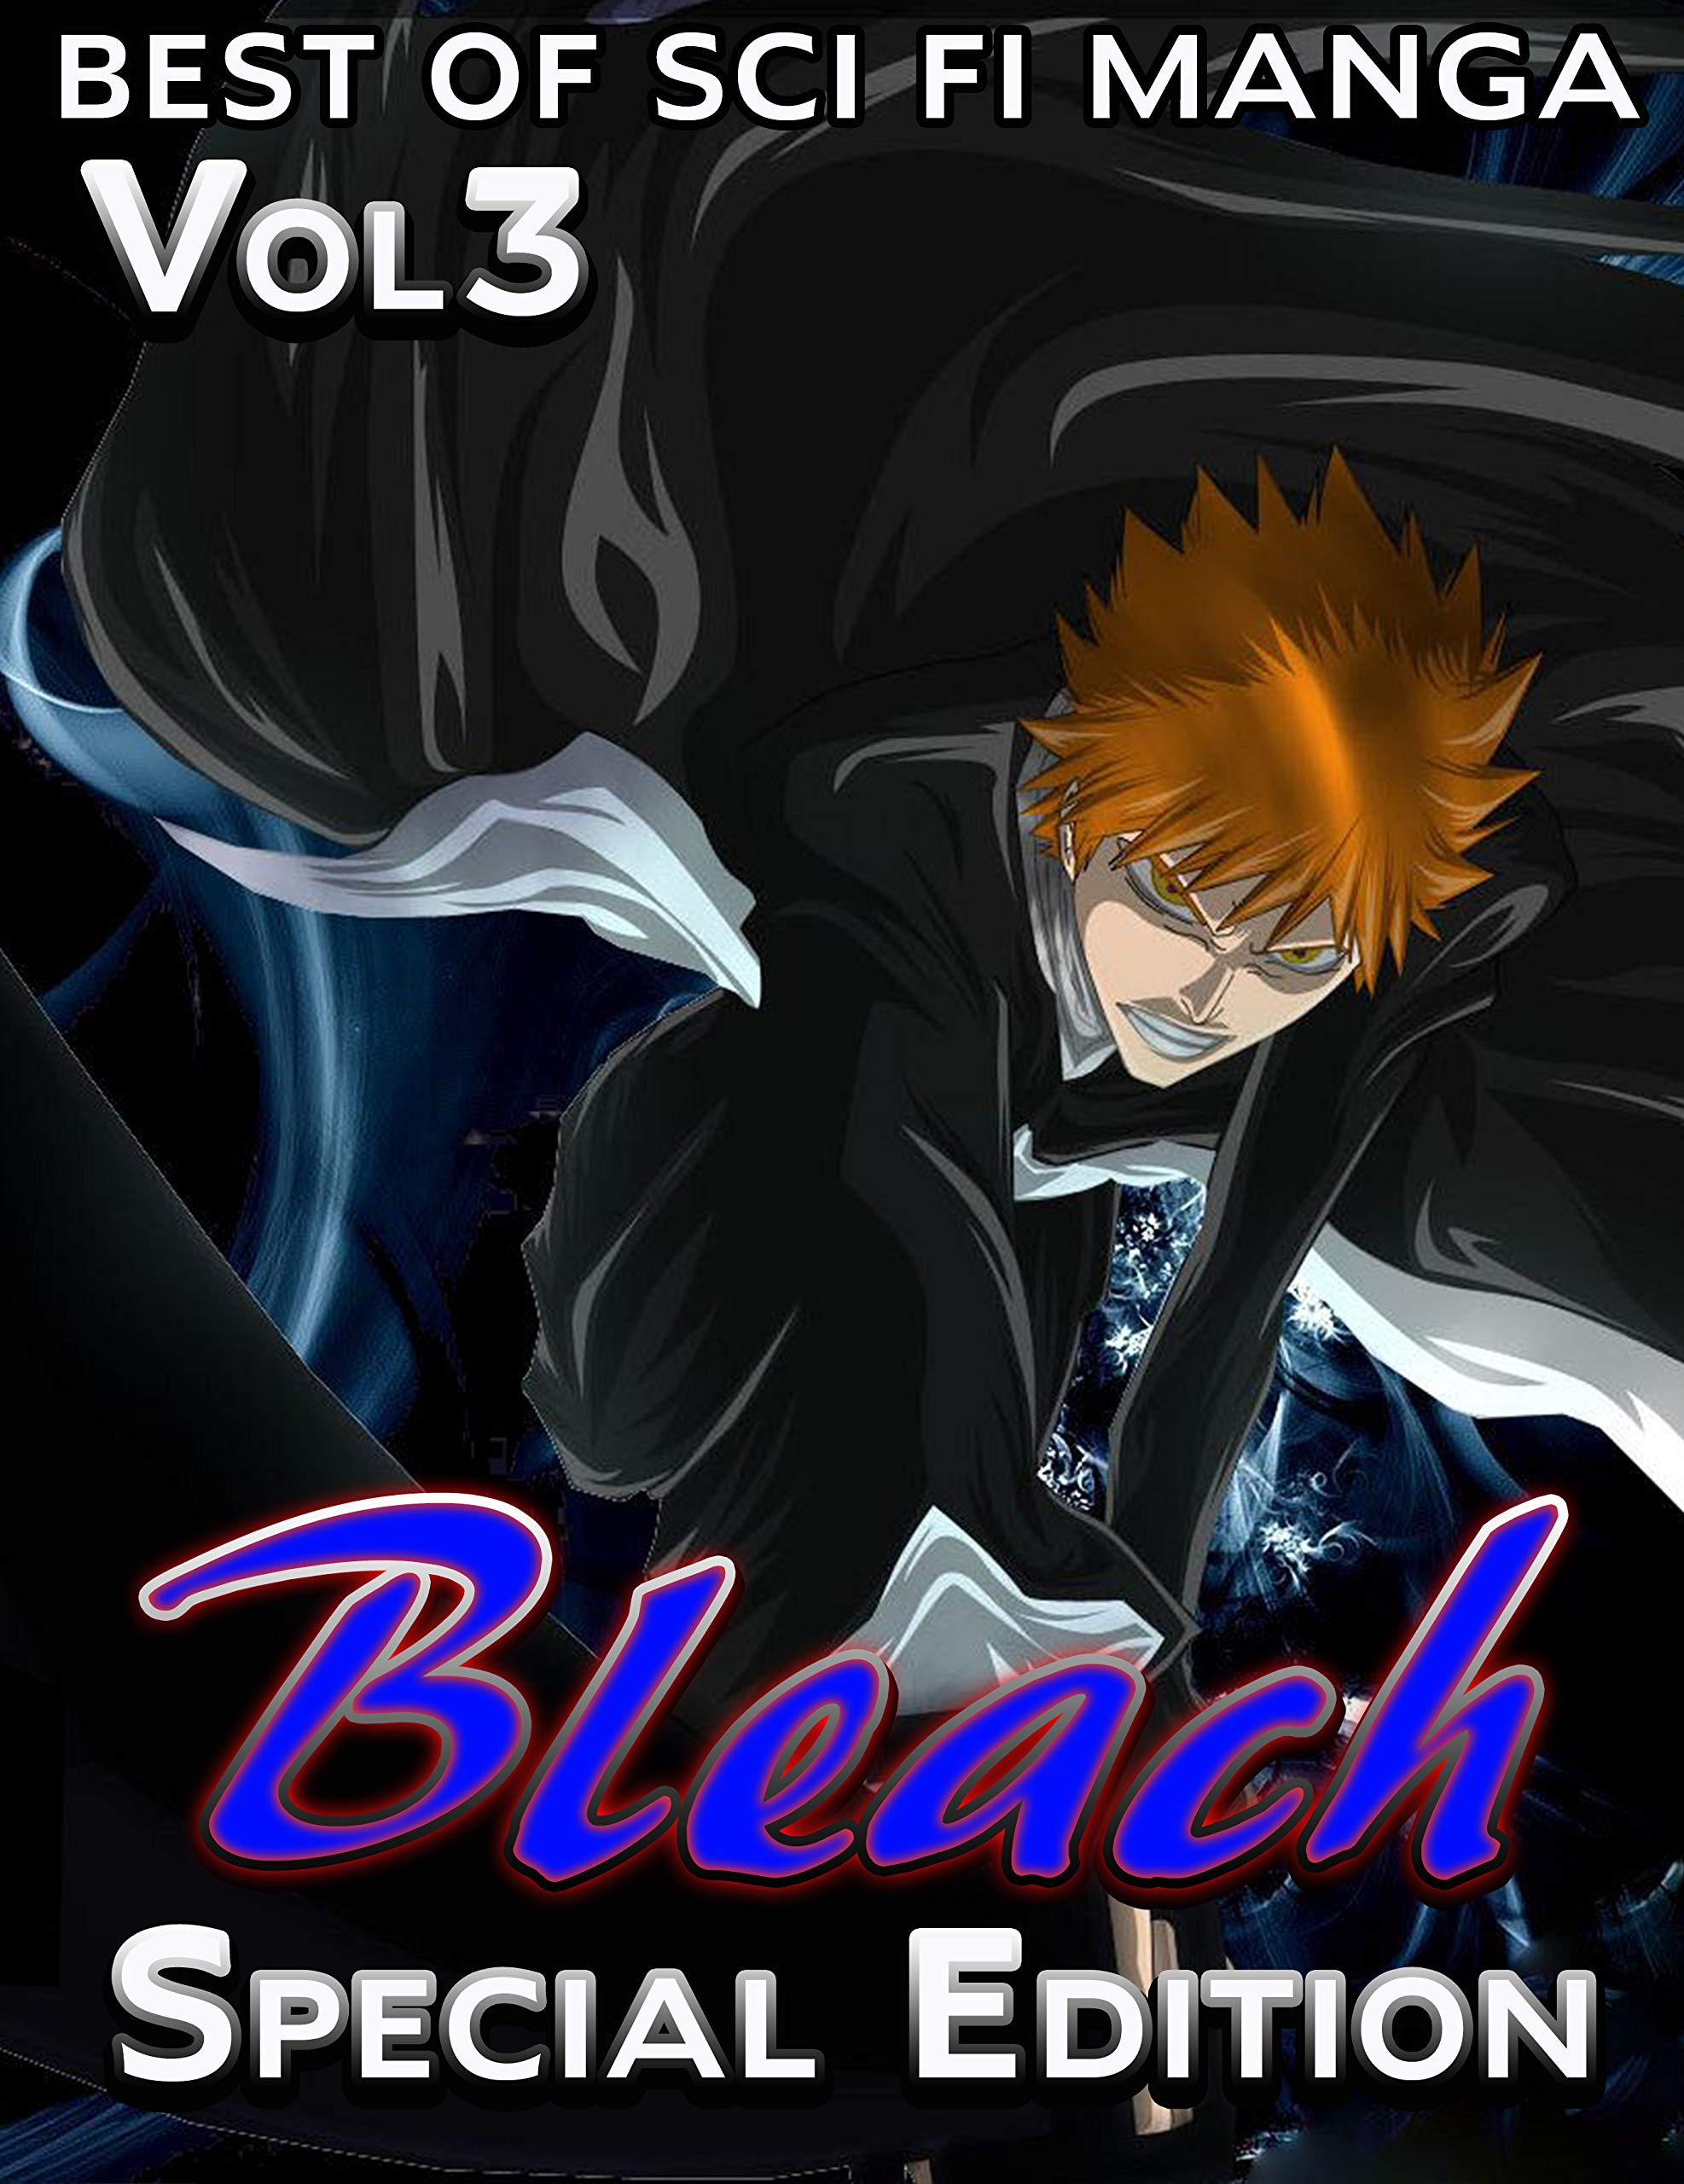 Best of Sci fi Manga Bleach Special Edition: Limited Edition Bleach Vol 3